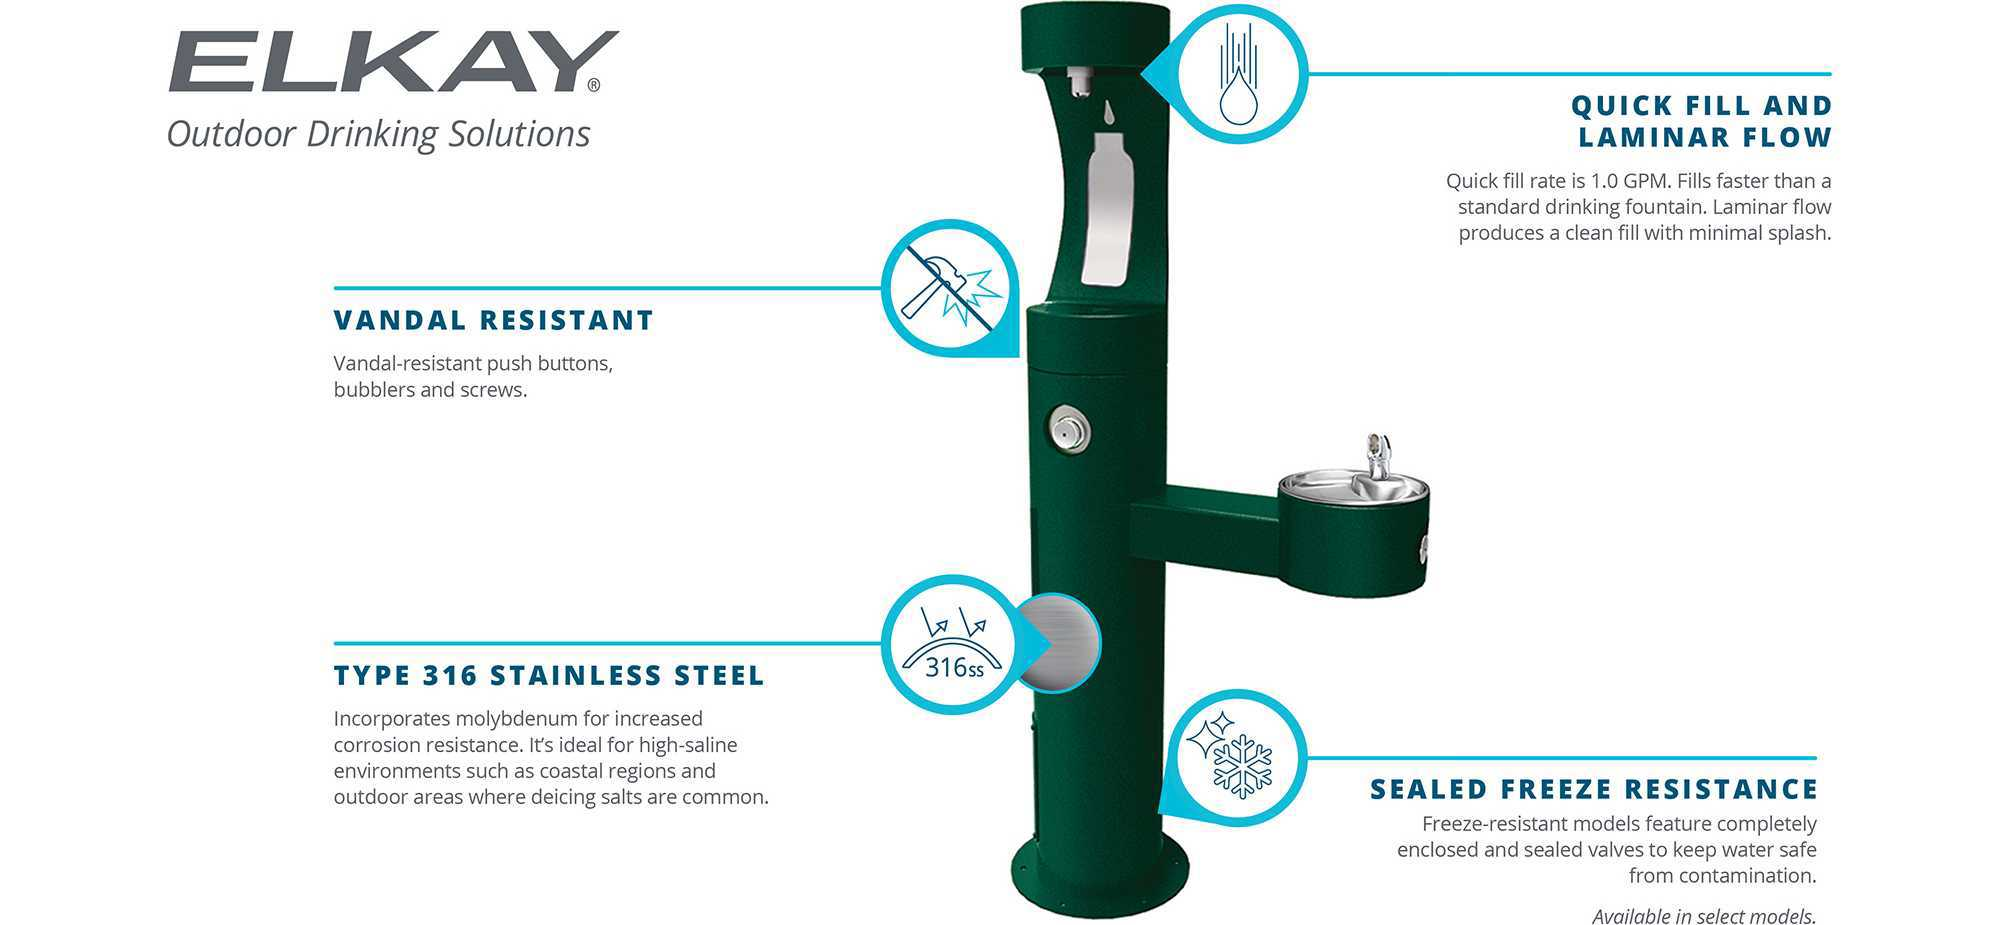 Outdoor Drinking Solutions Elkay Compartment Sink Drain Diagram For Pinterest Sealed Freeze Resistance